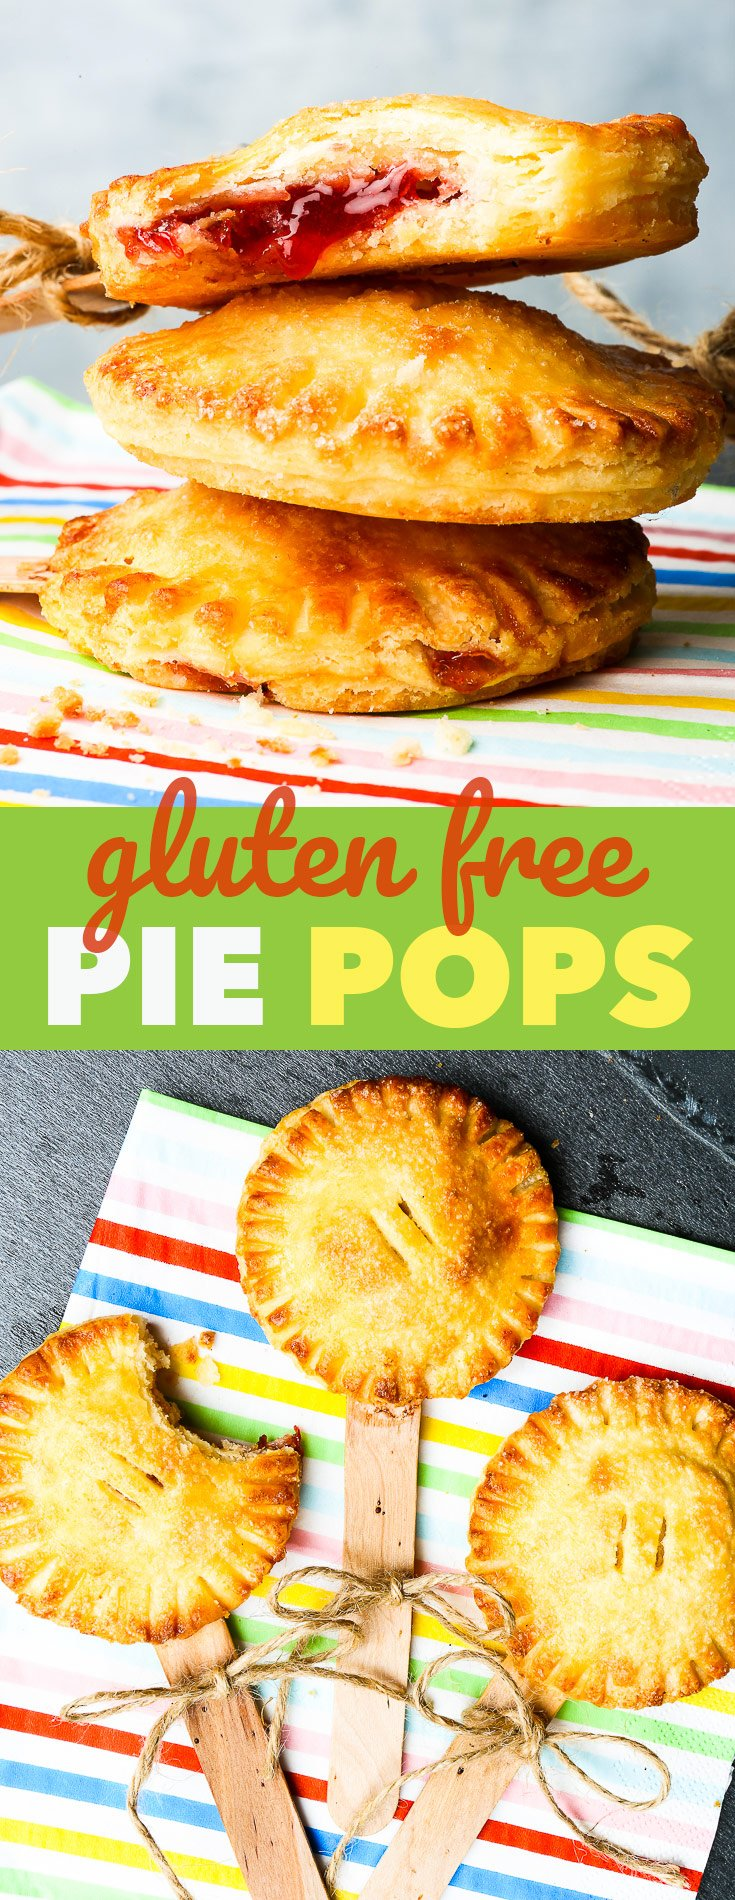 Gluten Free Pie Pops {gluten, soy & nut free, egg free version} - These gluten free pie pops are the perfect back to school (or work) snack for kids – be they small ones or big ones. Perfectly flaky, buttery gluten free pie crust pastry meets simple, but yummy strawberry jam filling – in a dessert-snack that couldn't be easier to make! (Psst, there's a video with step-by-step instructions, as well!)